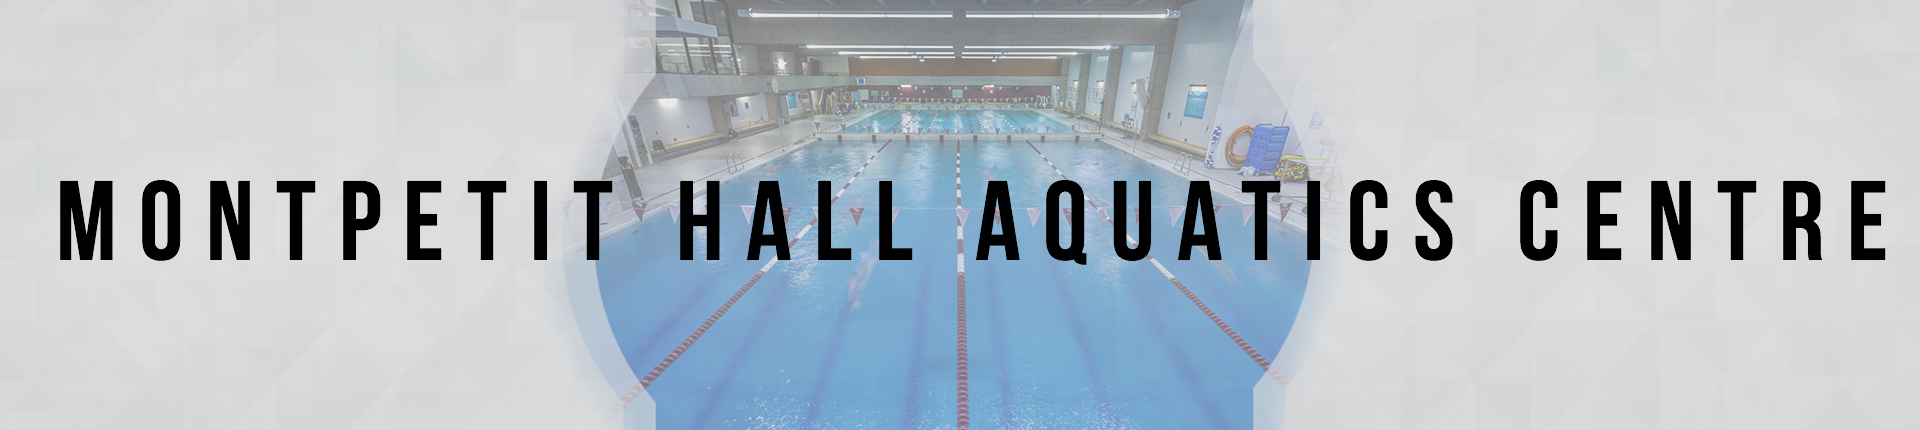 Montpetit Hall Aquatics Centre